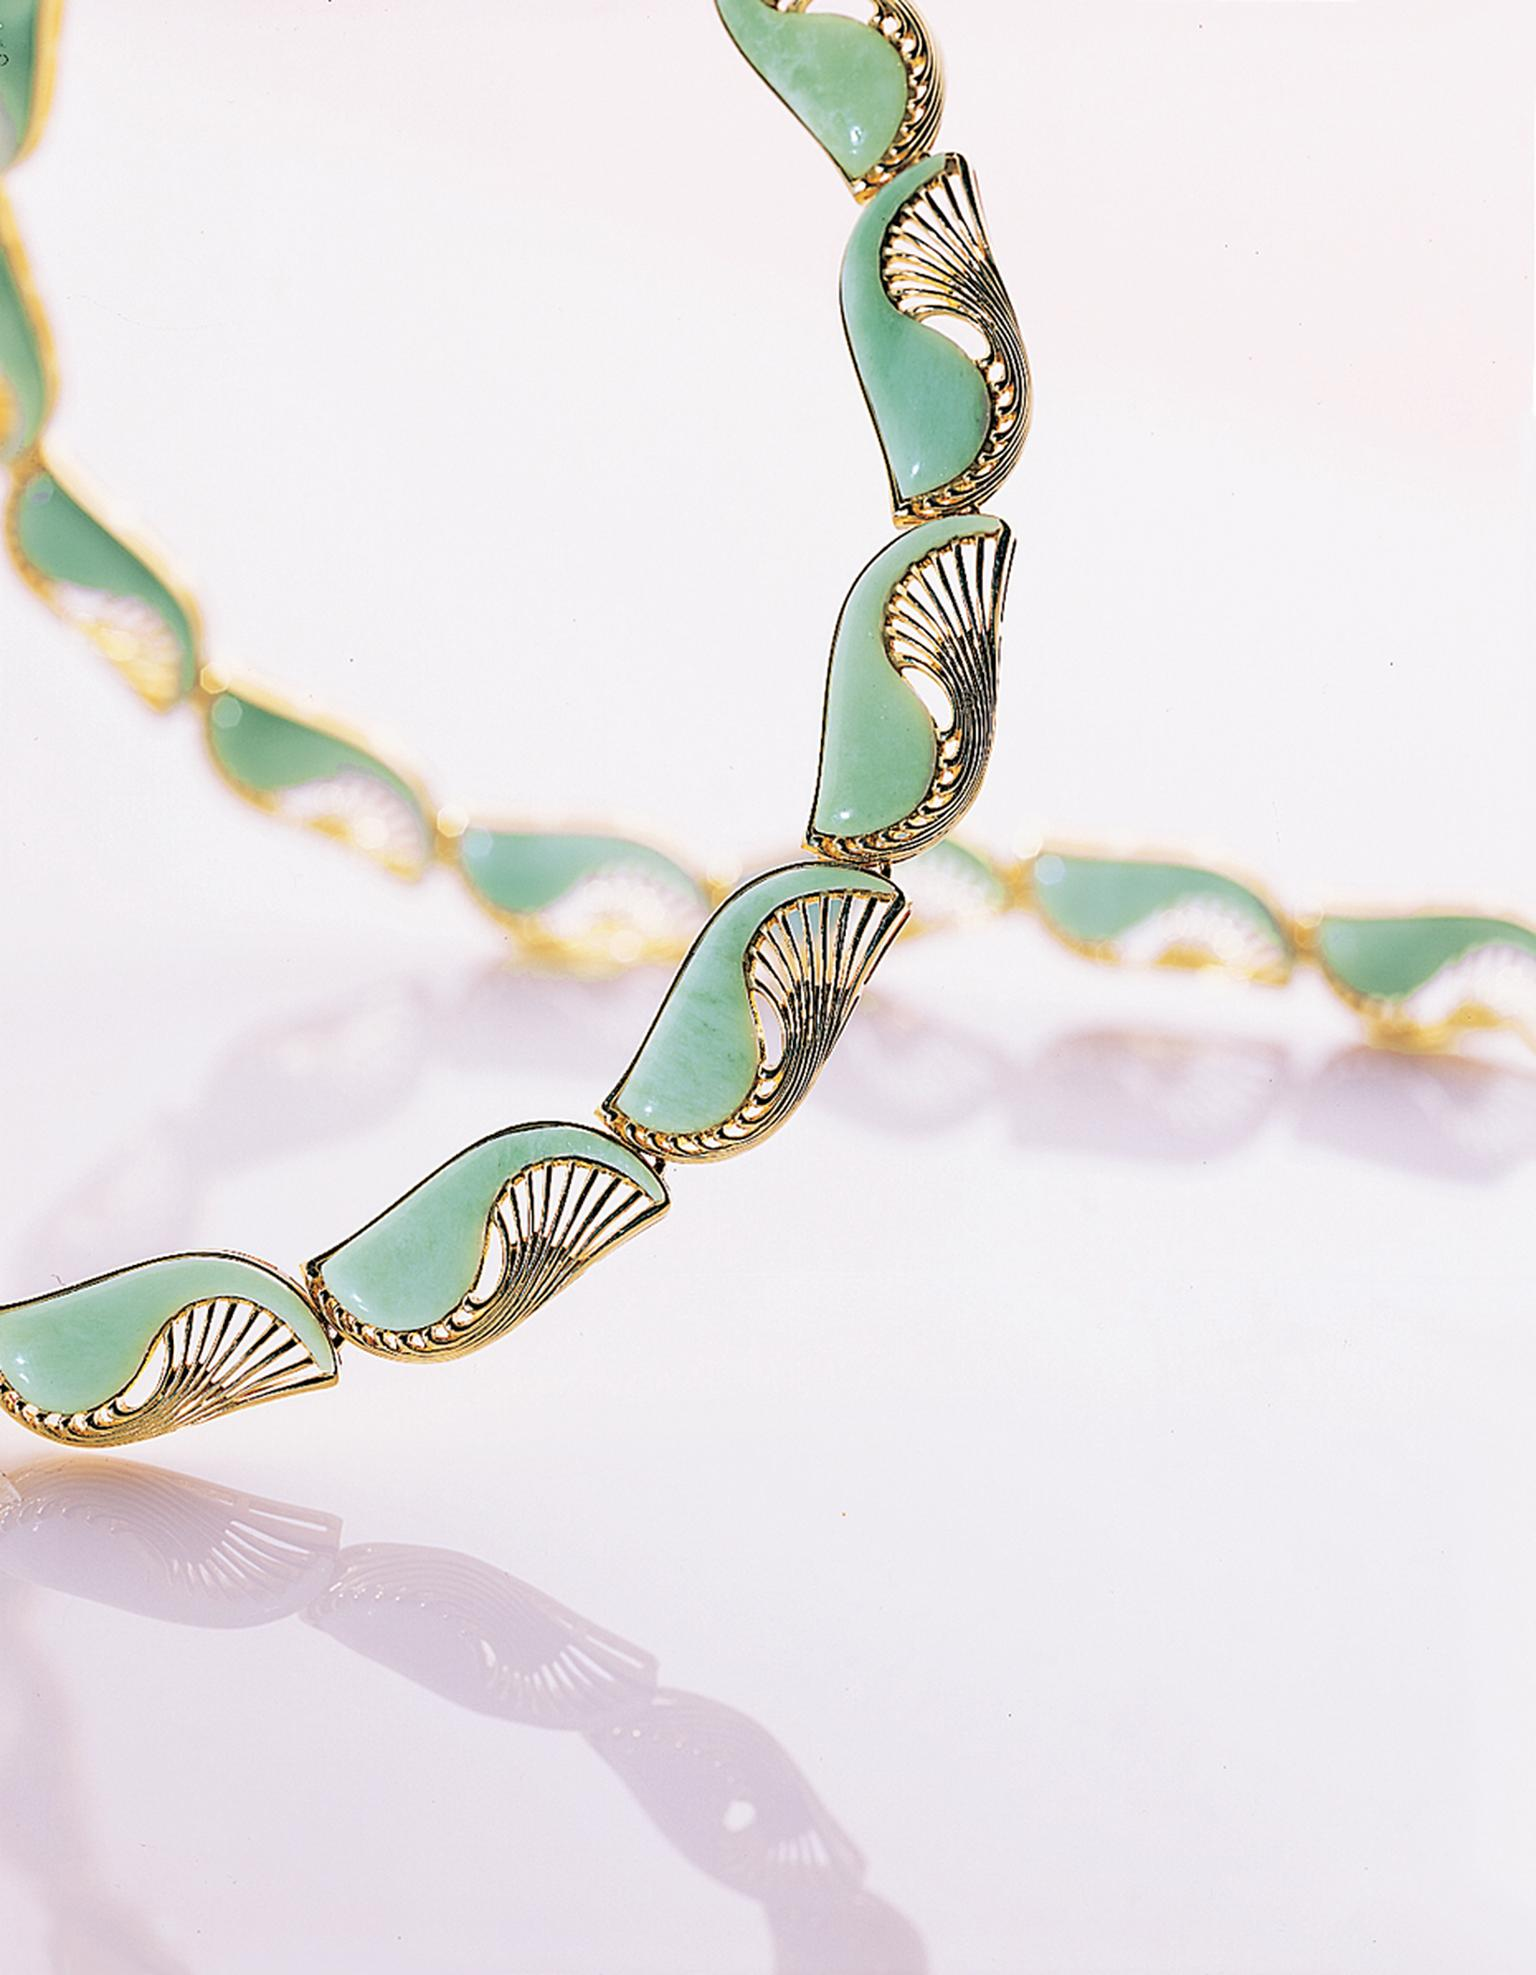 Myungji Ye Water Bird Series gold necklace with serpentine